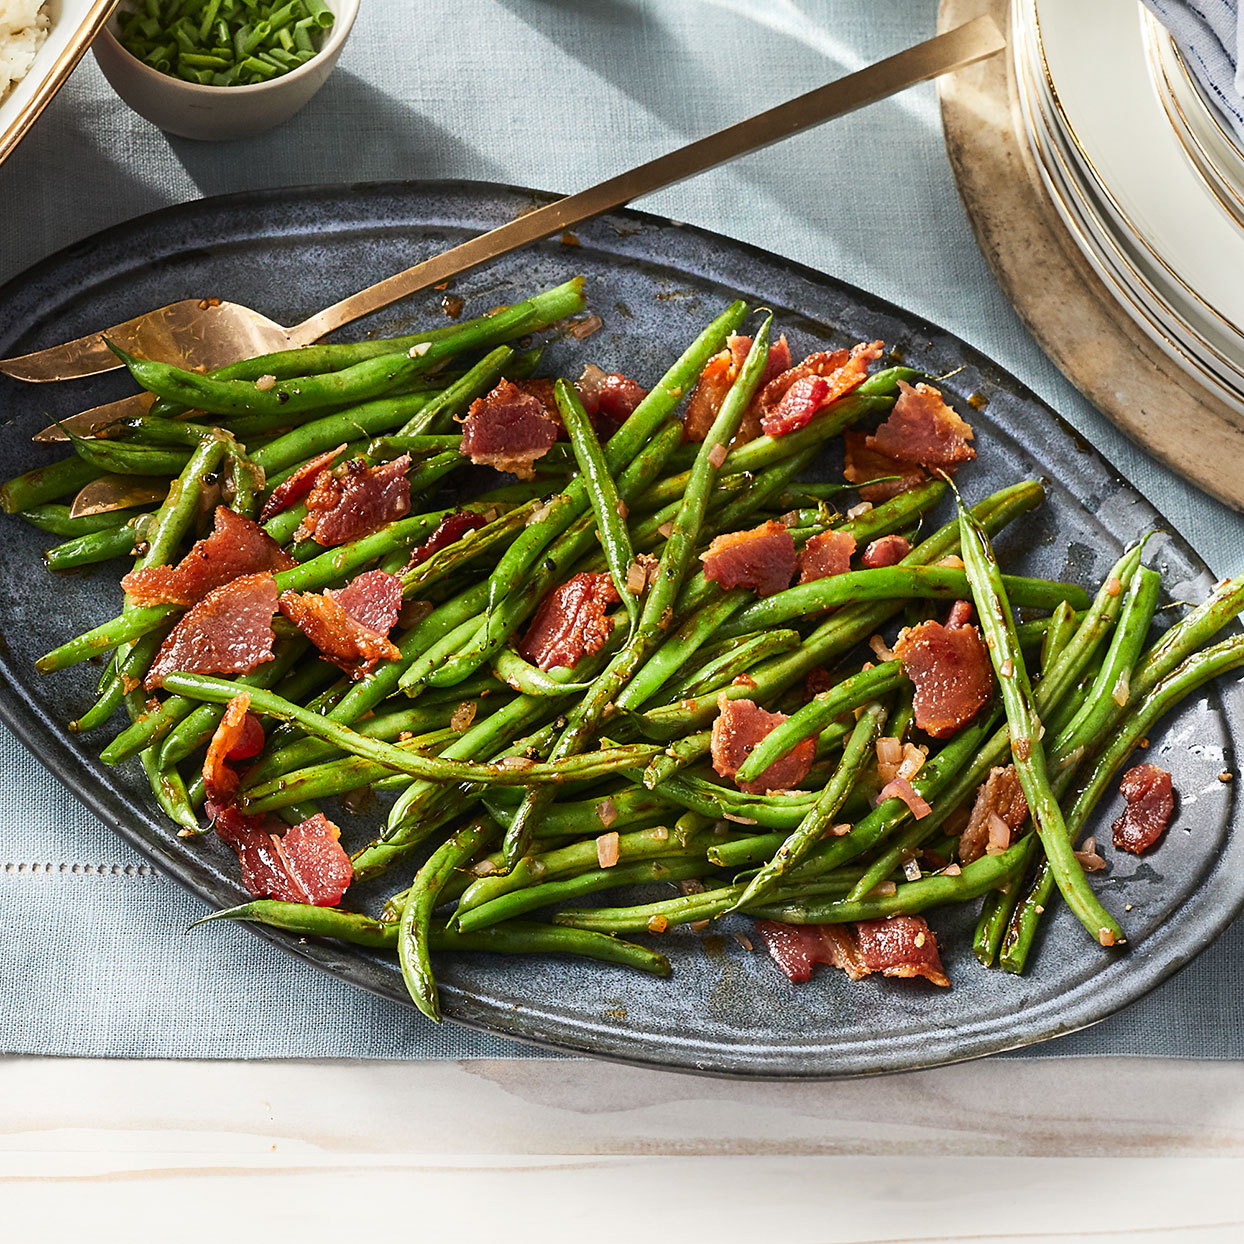 Roasted Green Beans with Applewood Bacon Andrea Kirkland M.S., RD